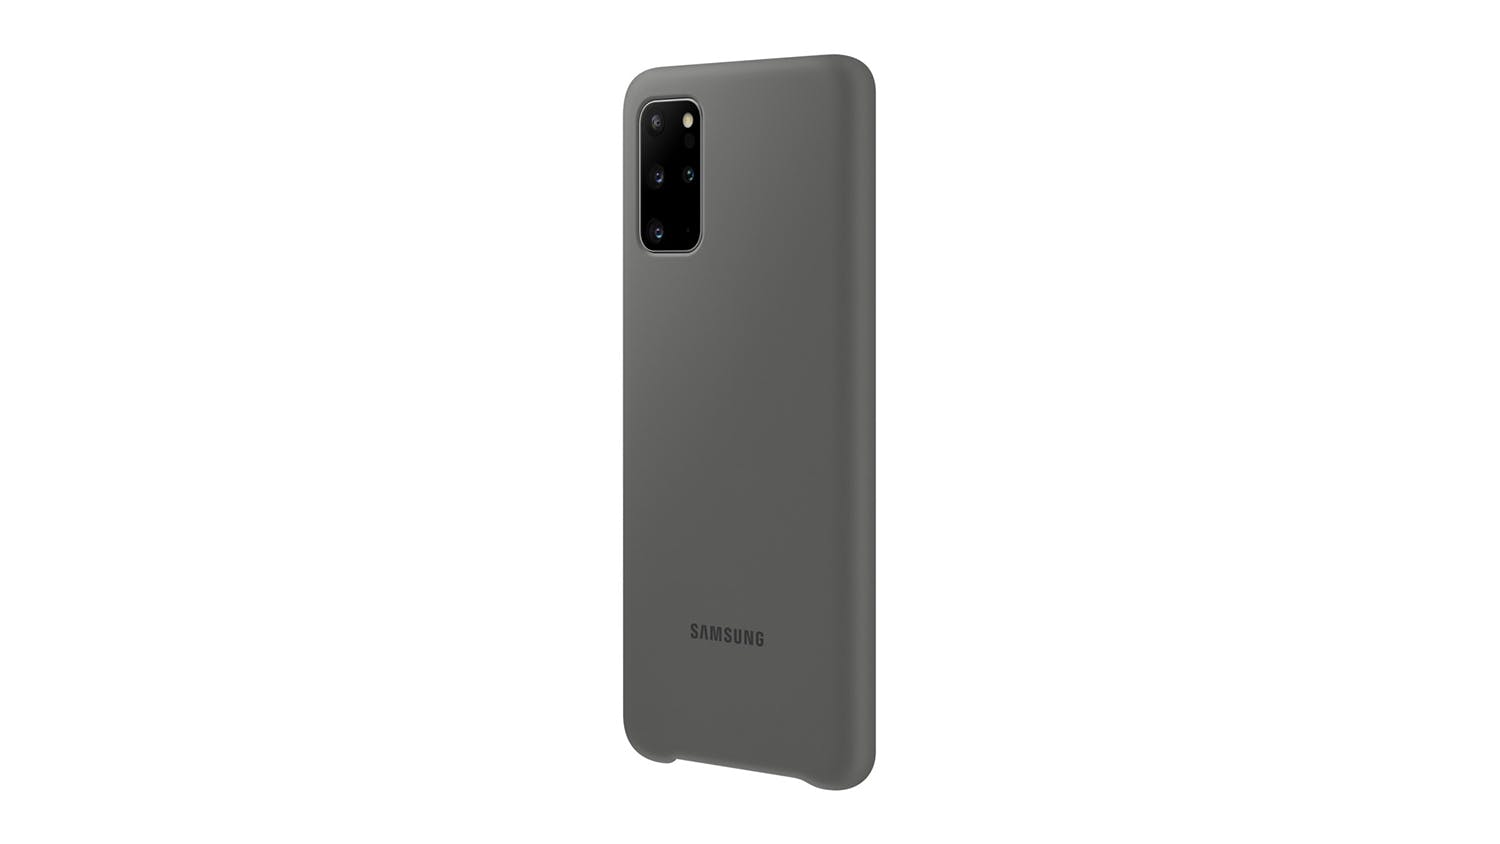 Samsung Silicone Cover for Samsung Galaxy S20+ - Grey